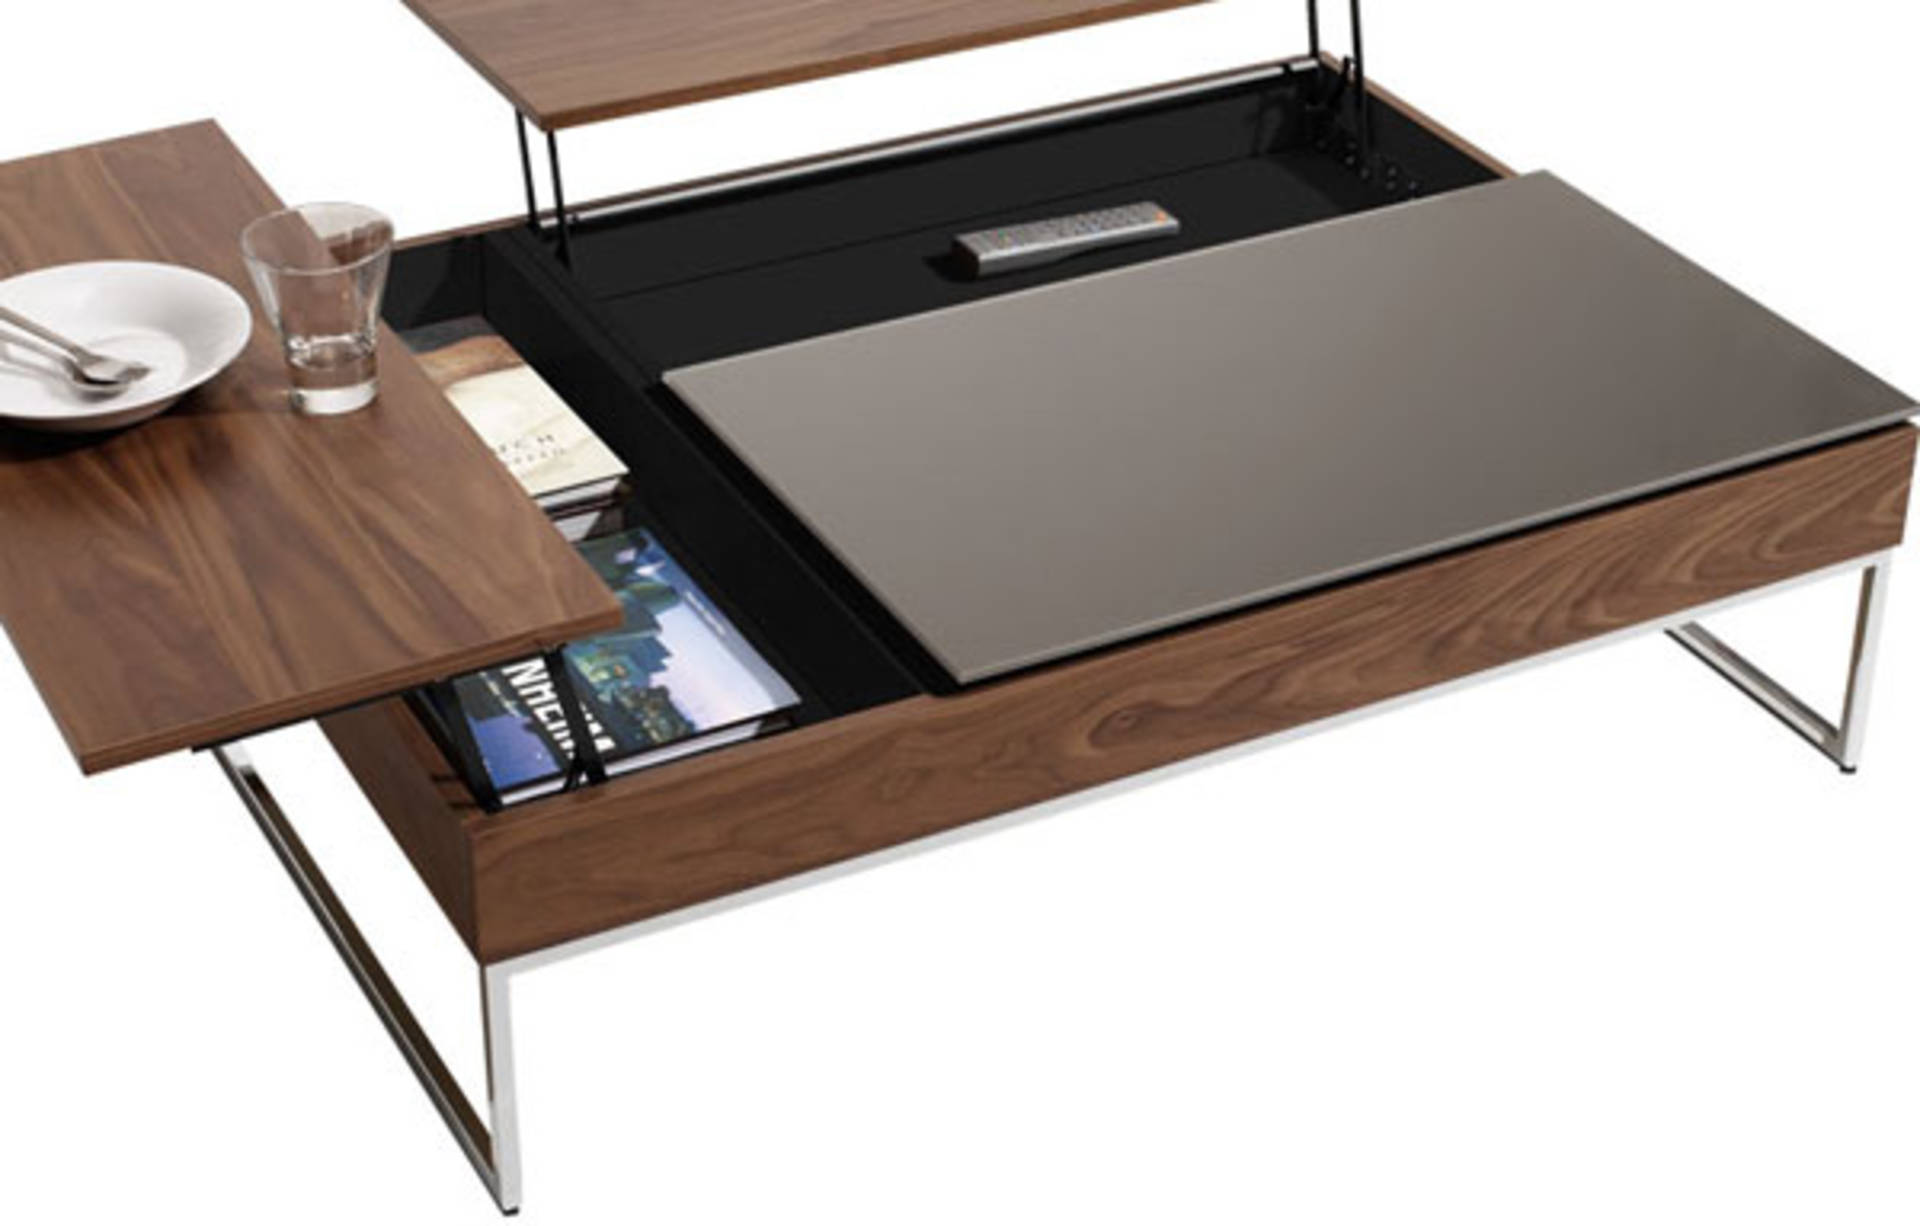 Coffee table with hidden storage space by bo concept home reviews coffee table with hidden storage space by bo concept geotapseo Choice Image